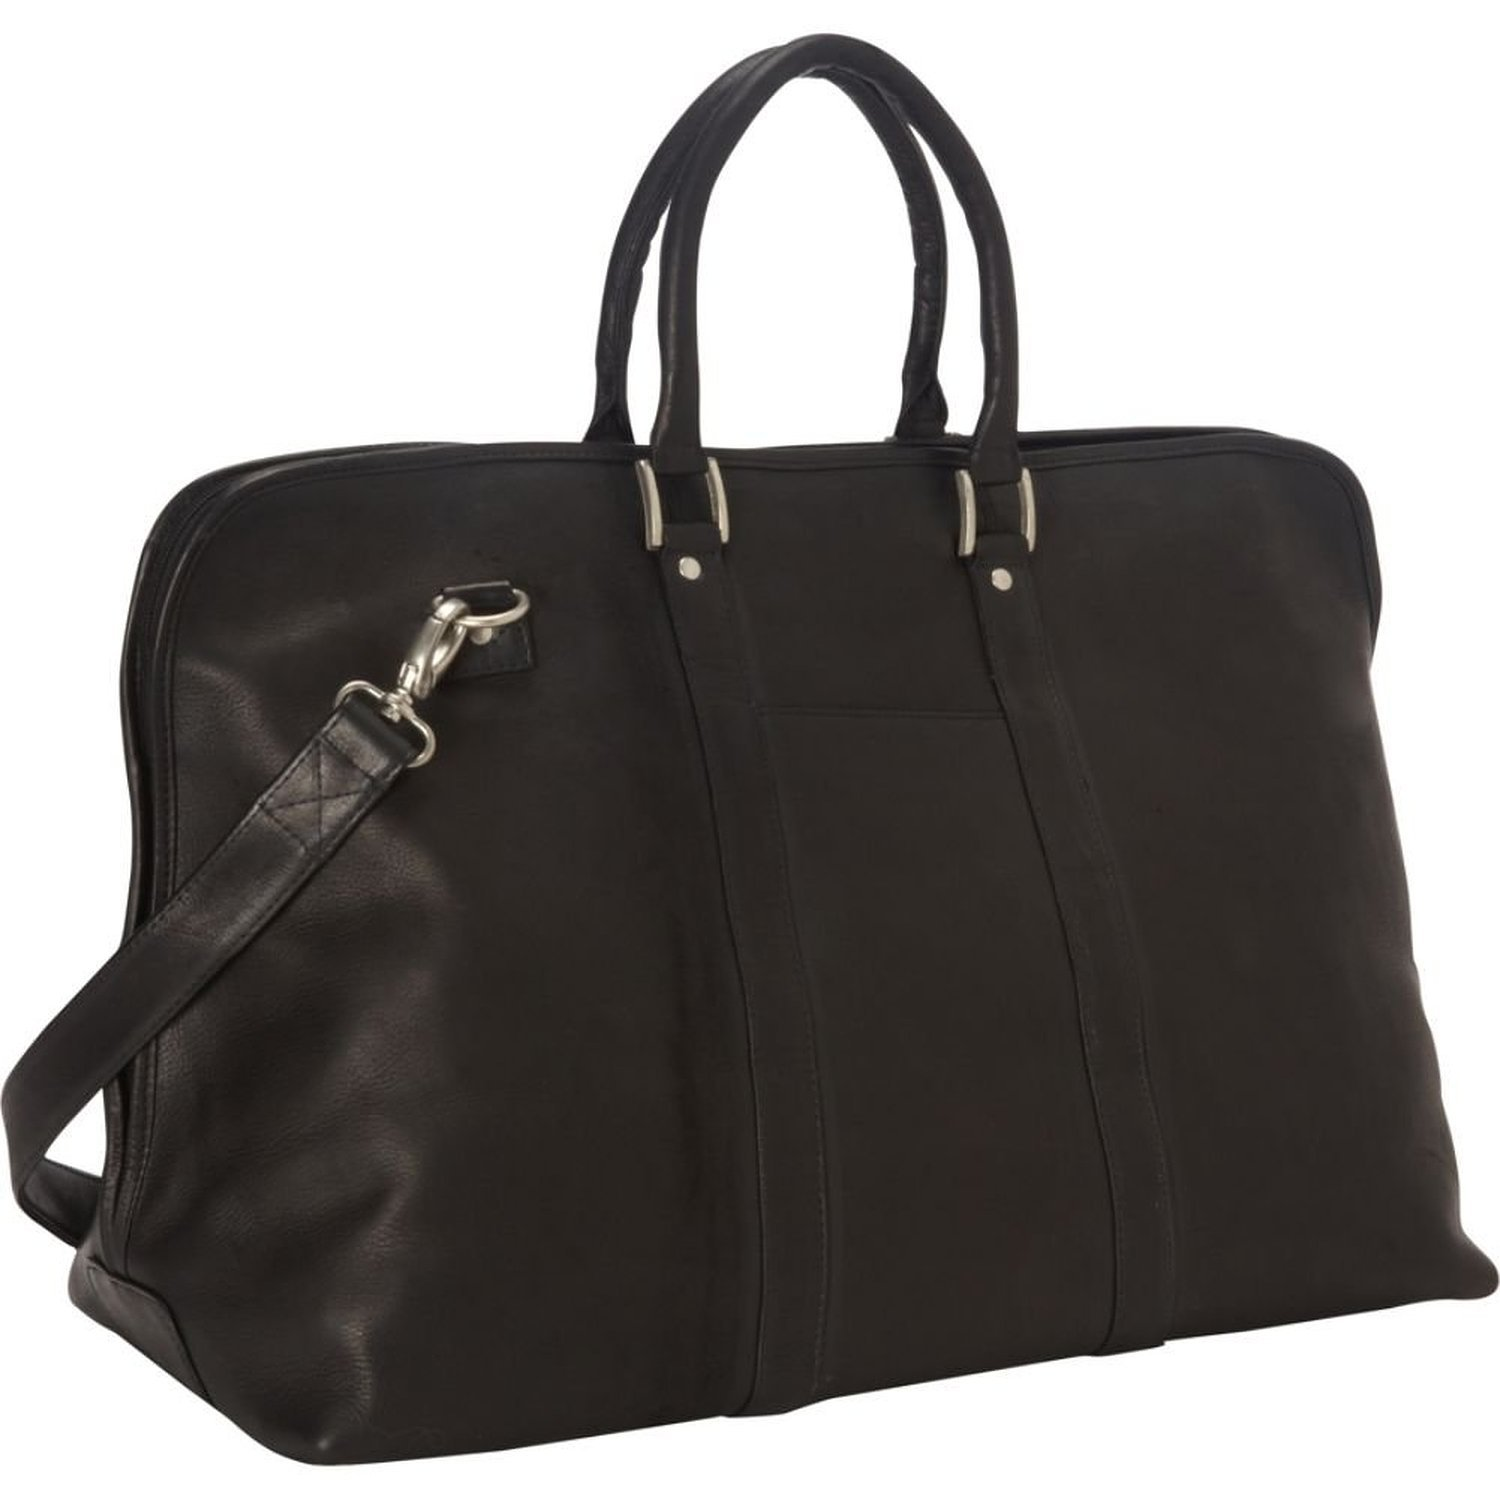 Royce Leather Luxury Travel Carryon Colombian Leather Duffel Bag, Black, One Size